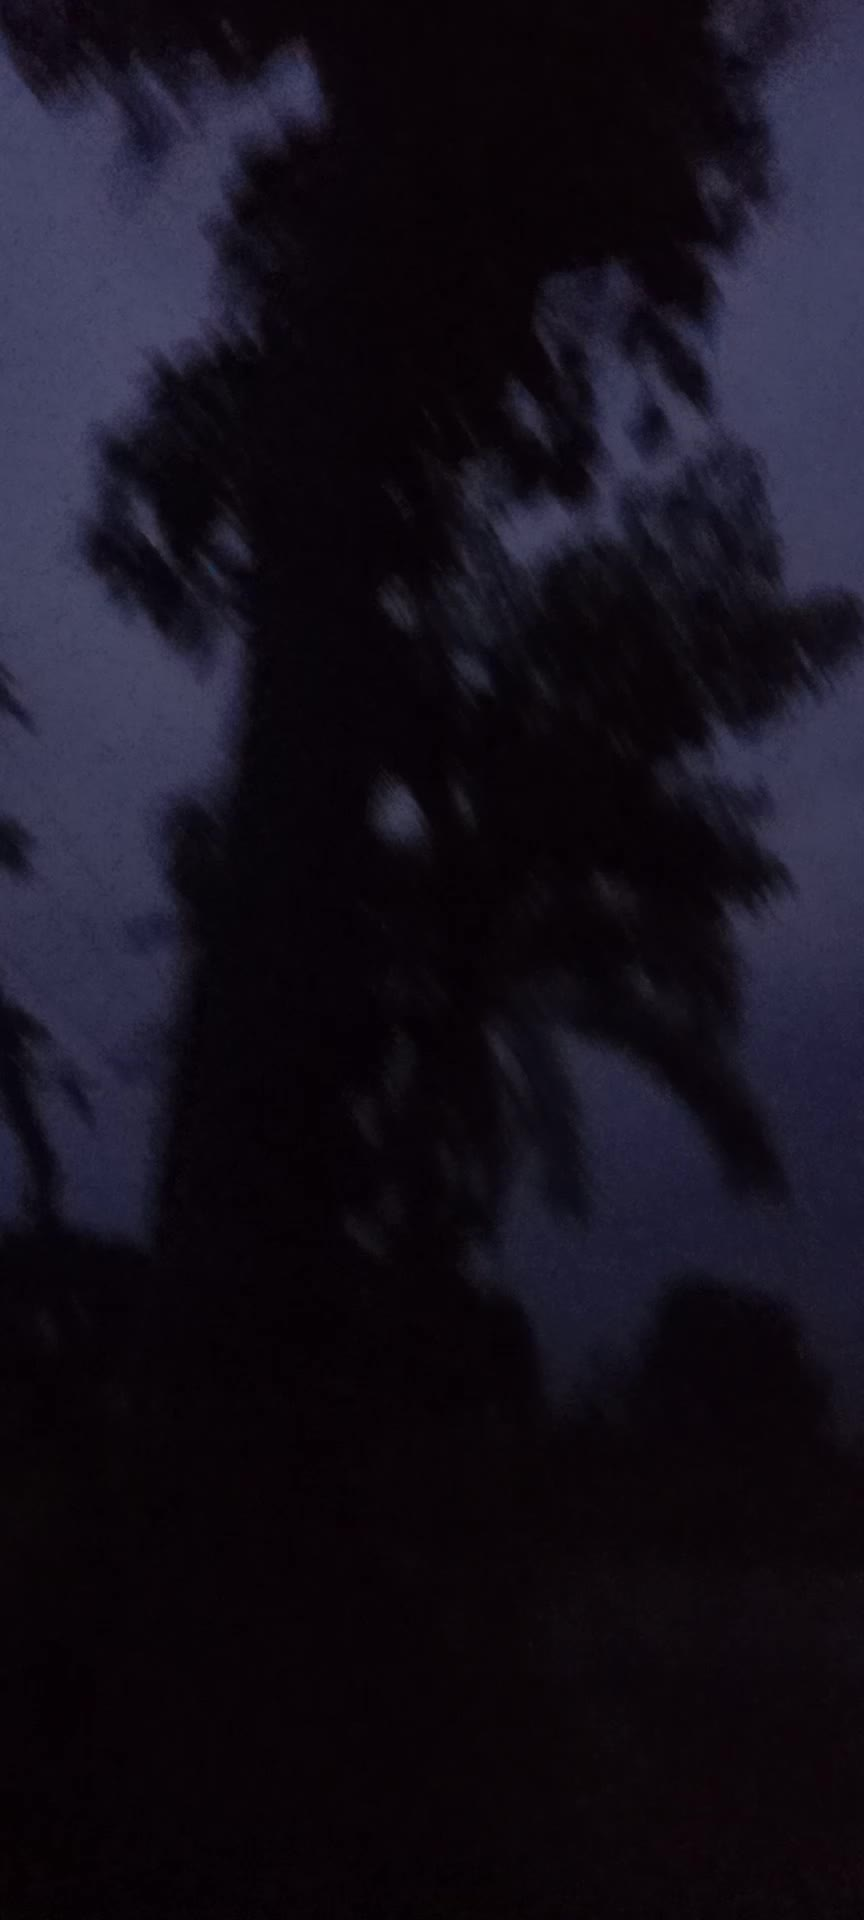 I was doing a video tonight when friends were coming together in the moonlit light moonlit night.